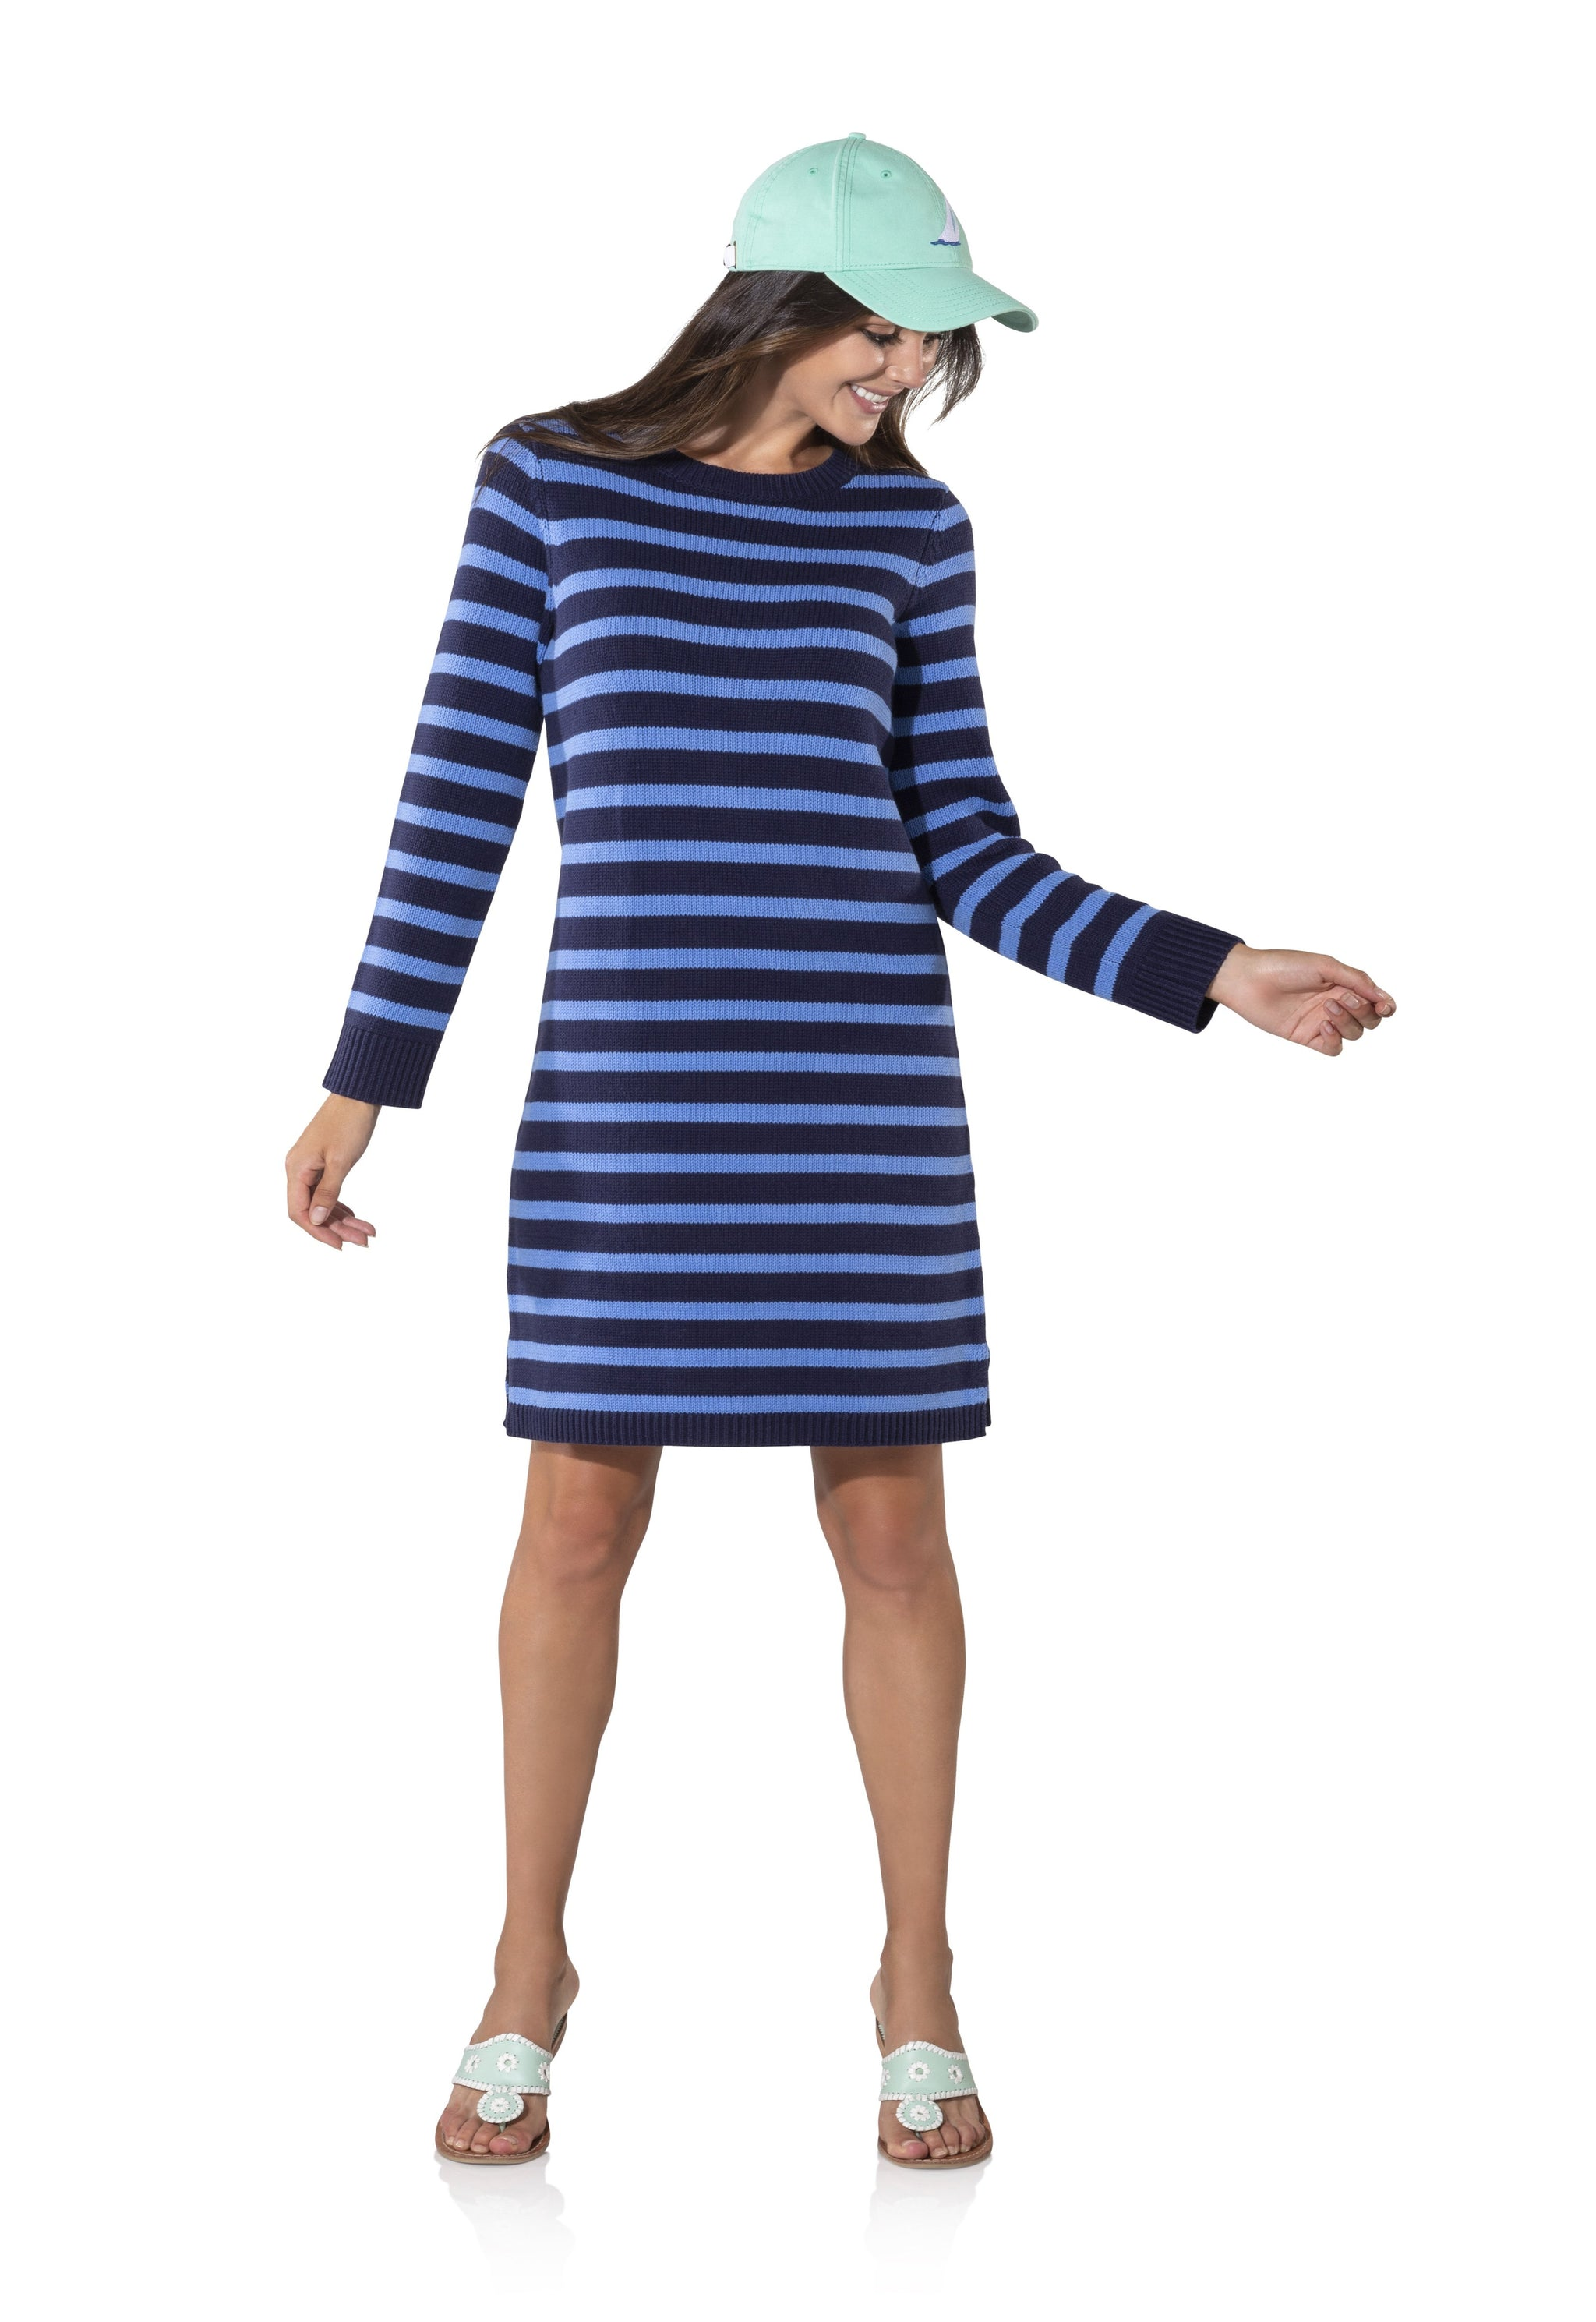 c53736be865 Long Sleeve Striped Sweater Dress Navy Hydrangea - Sail to Sable